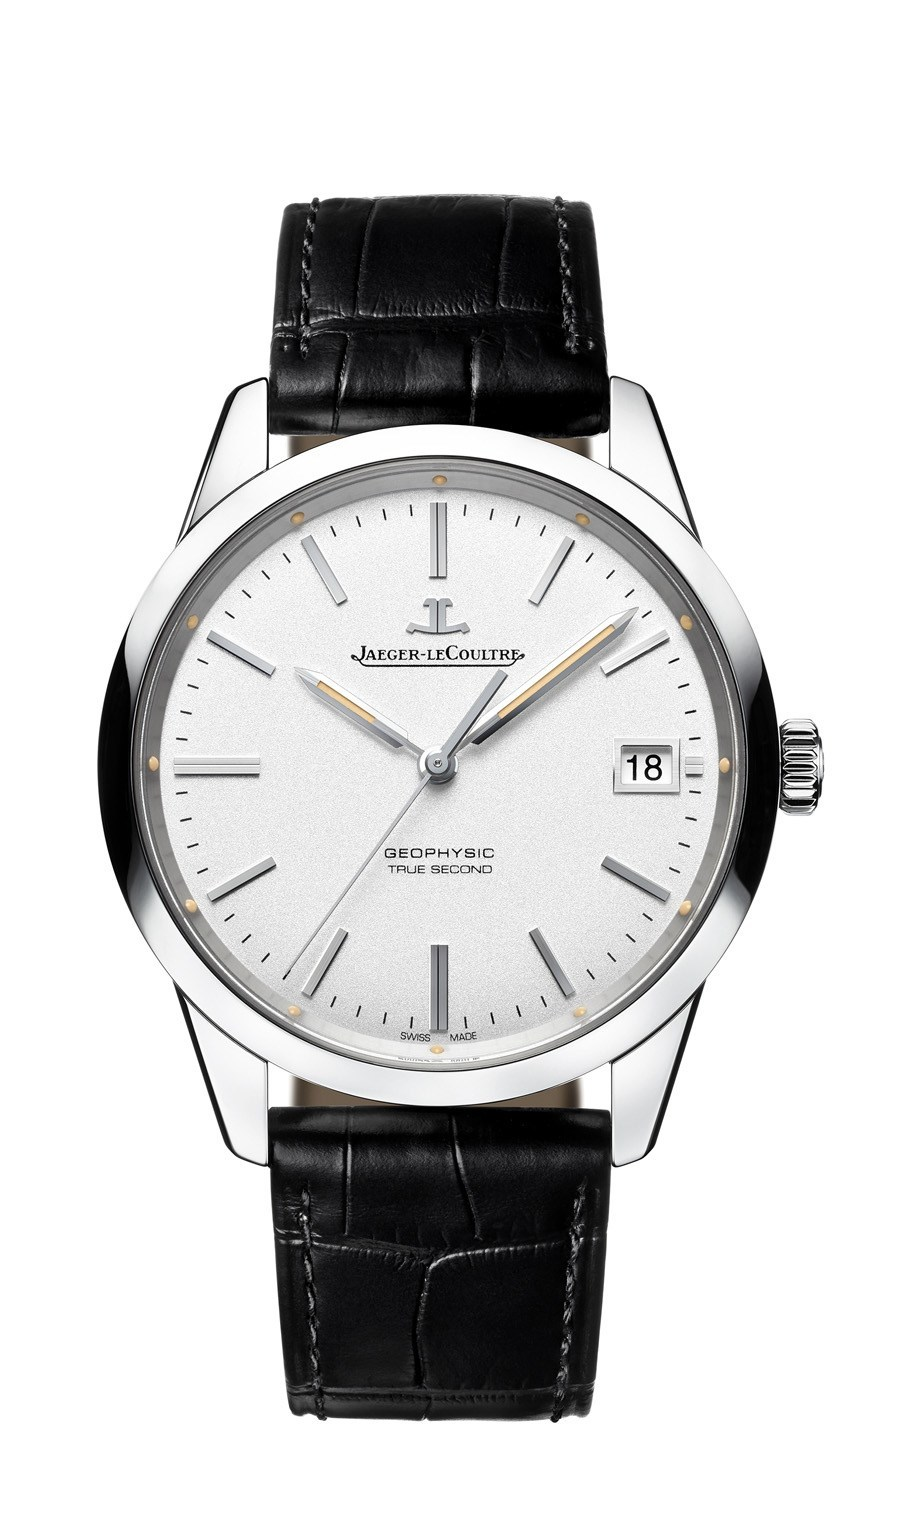 Jaeger-LeCoultre: Geophysic True Second in Edelstahl